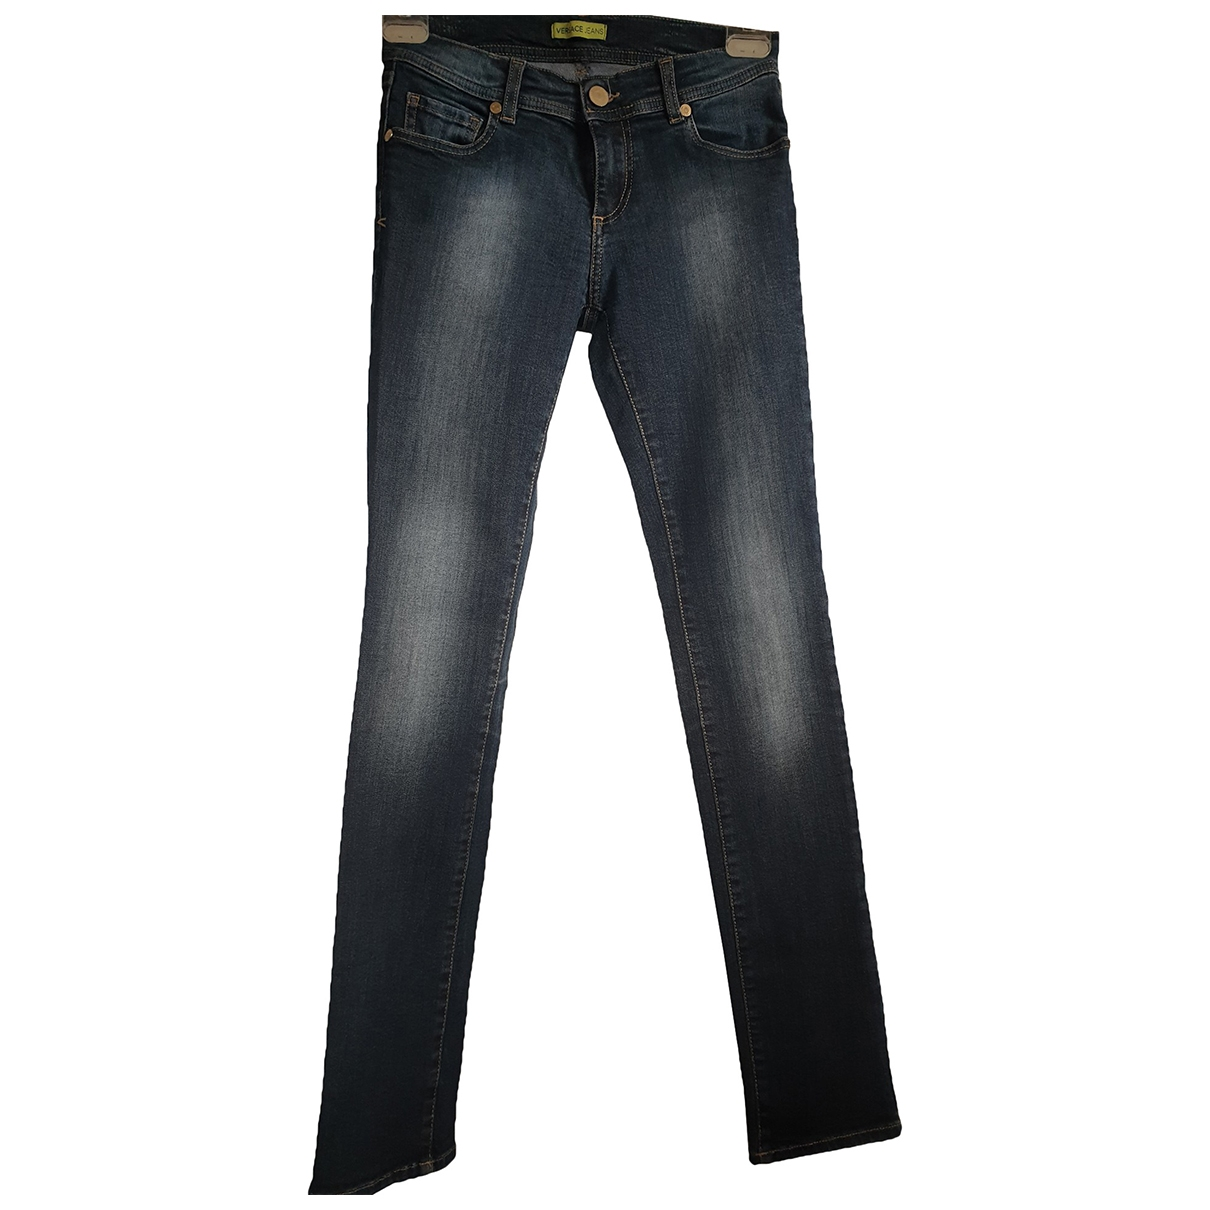 Versace Jeans \N Blue Cotton - elasthane Jeans for Women 36 FR